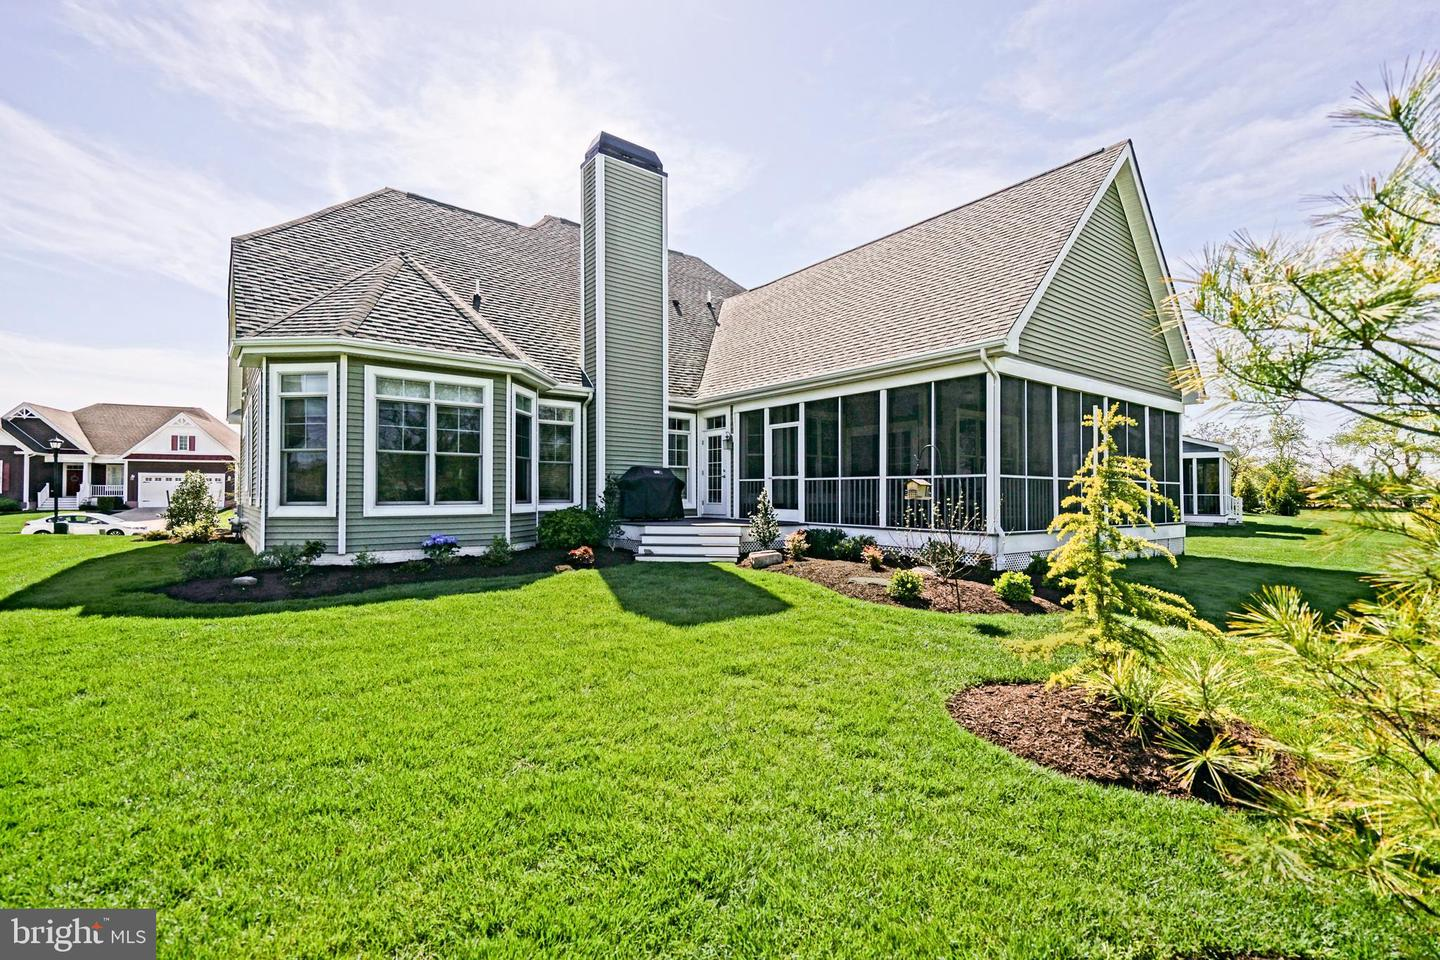 DESU139128-301667383130-2019-08-05-10-43-56 35222 Overfalls Dr N | Lewes, DE Real Estate For Sale | MLS# Desu139128  - Lee Ann Group